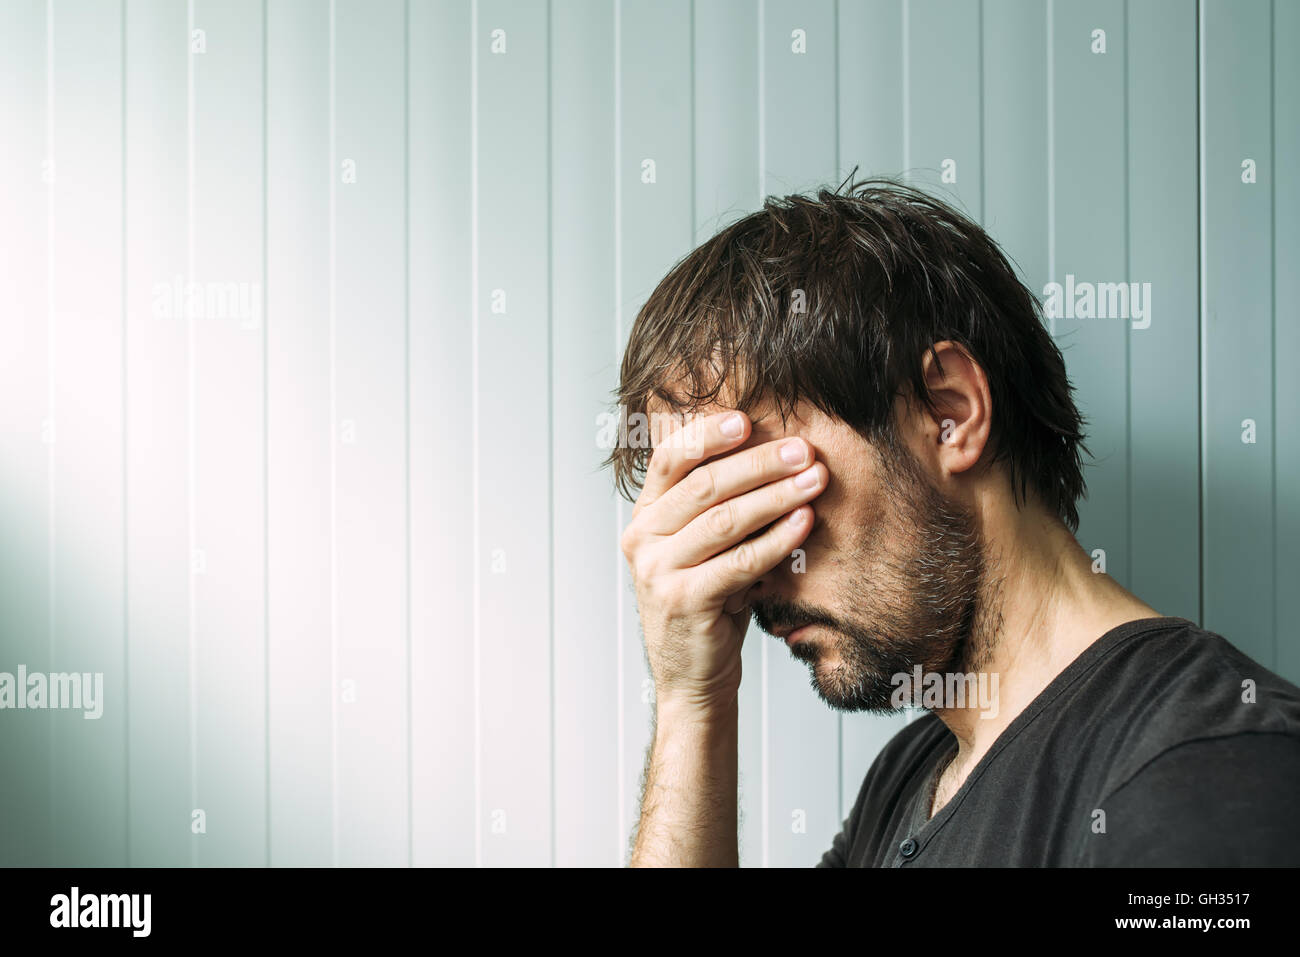 Profile portrait od miserable troubled man with serious expression, depressive male with hand on face. - Stock Image